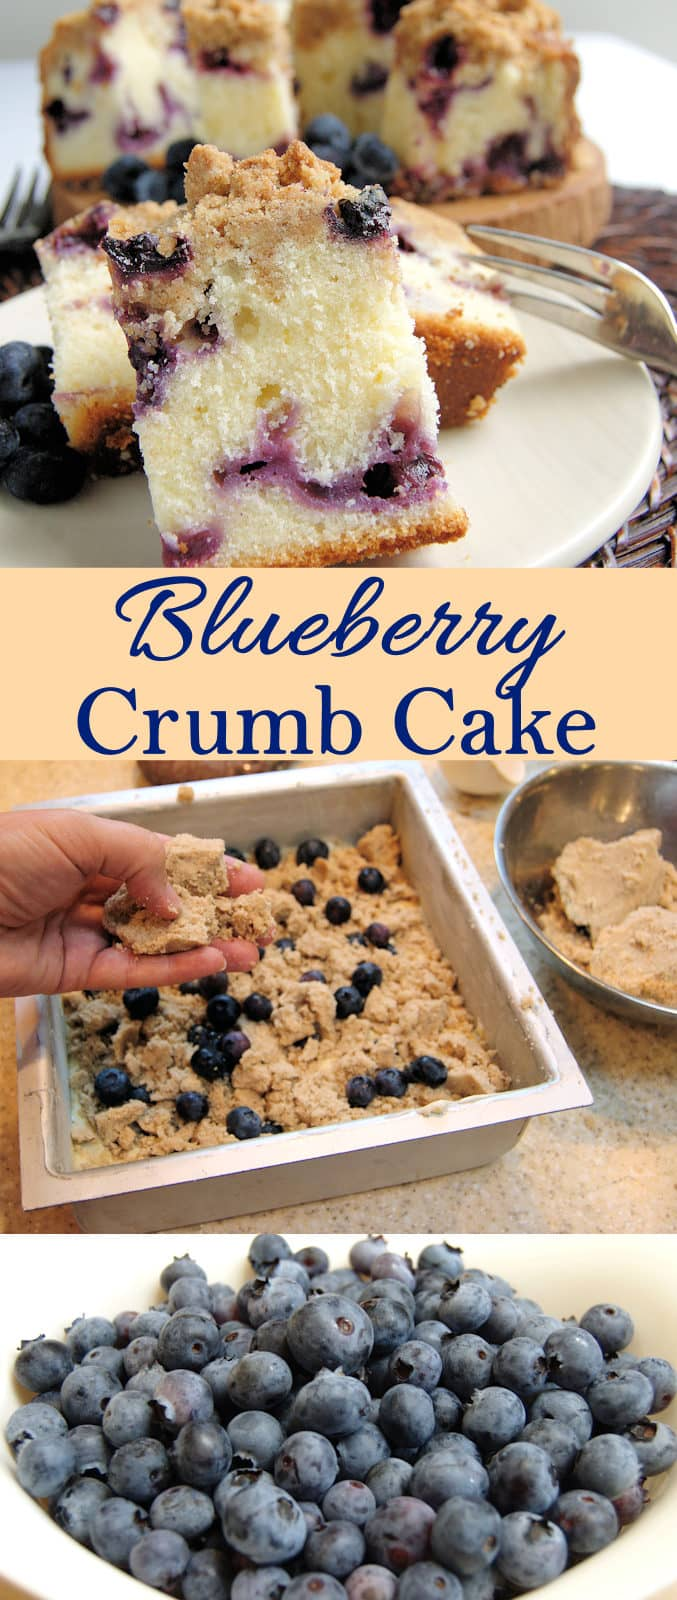 Delicious and easy to make Blueberry Crumb Cake. Find out how to make the perfect crumb topping.